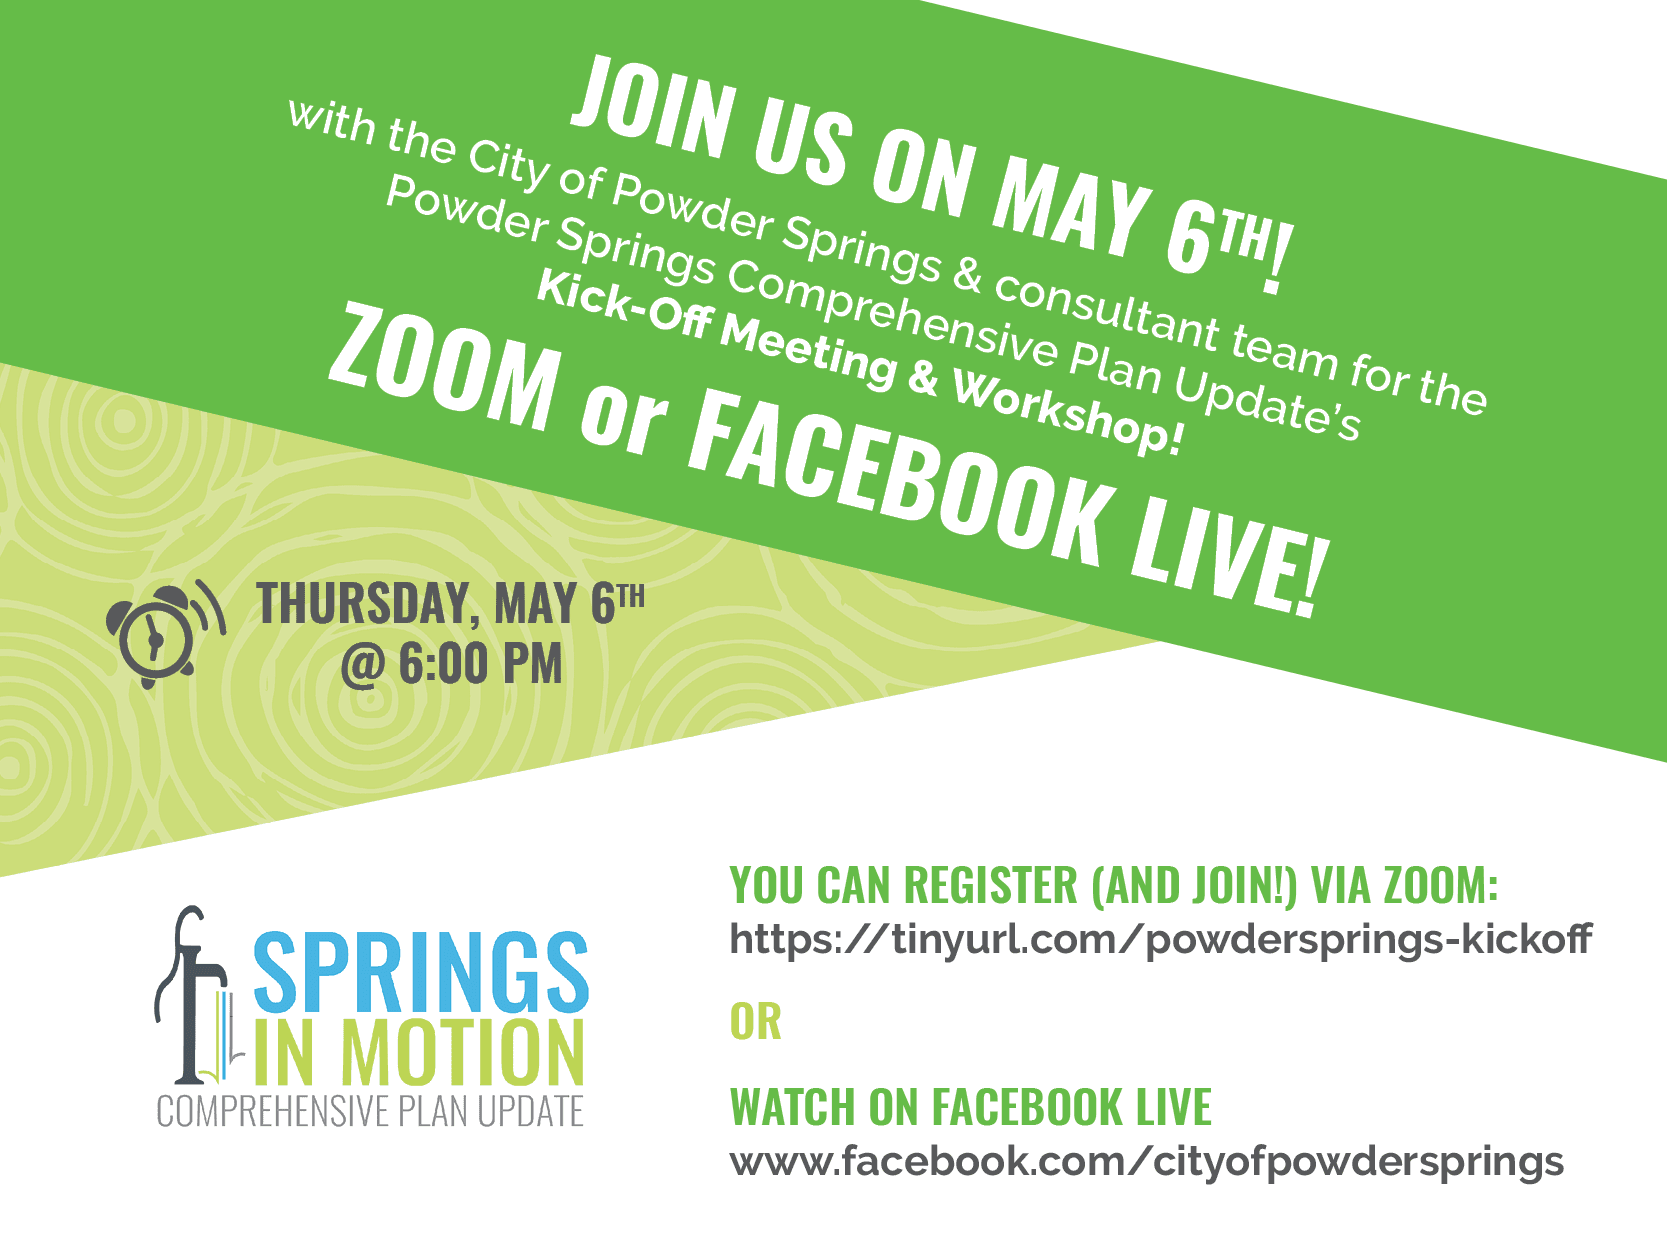 Announcement image for the City of Powder Springs' Comprehensive Plan Meeting set for May 6, 2021